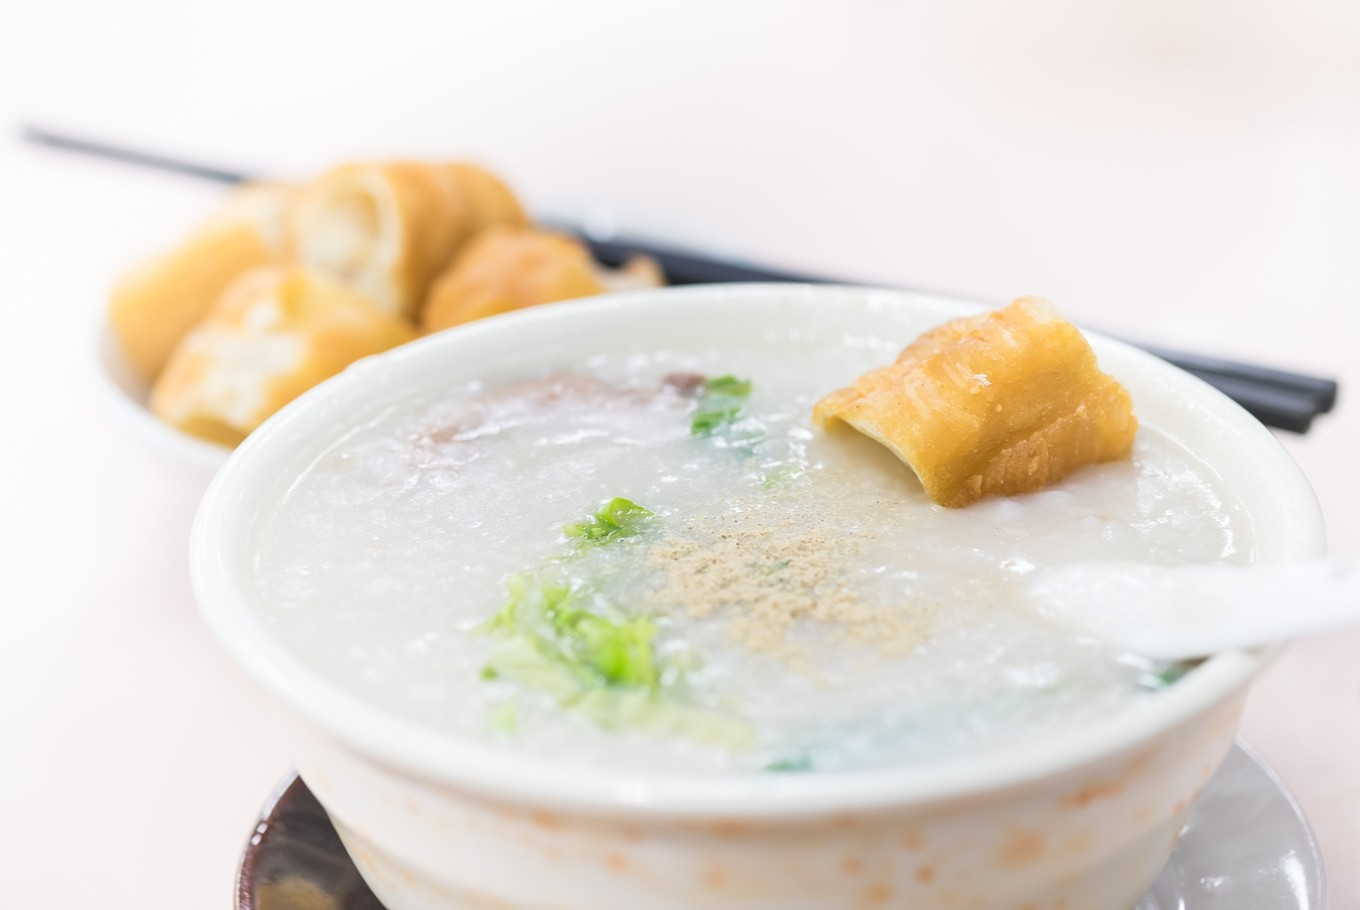 Seven 'bubur ayam' joints to warm your tummy at night